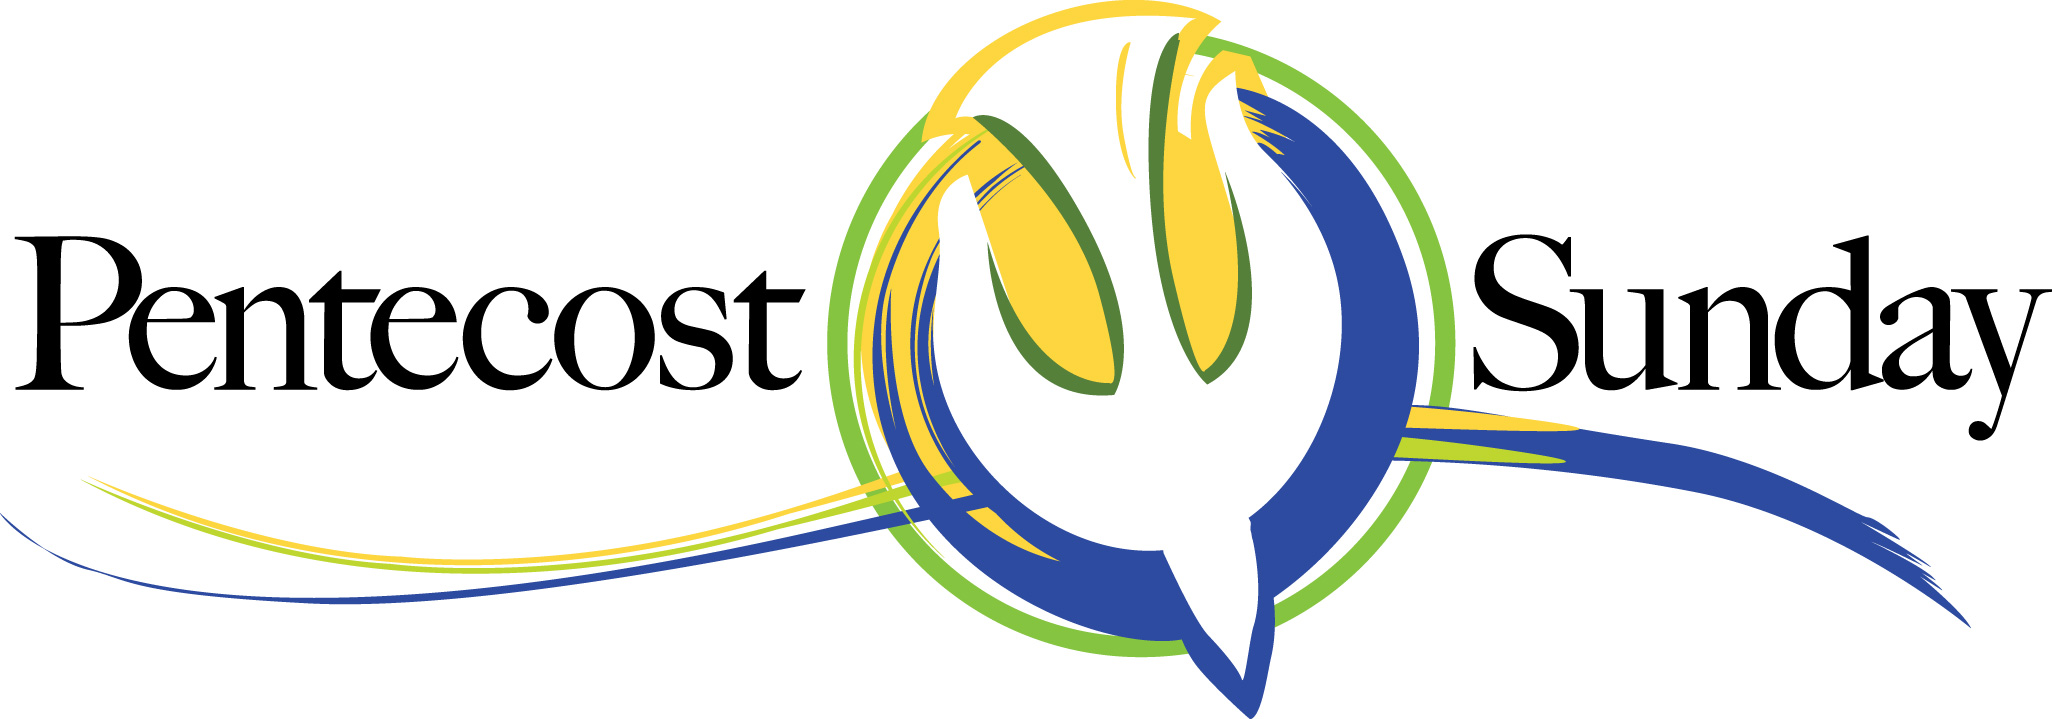 N image . Free clipart for pentecost sunday